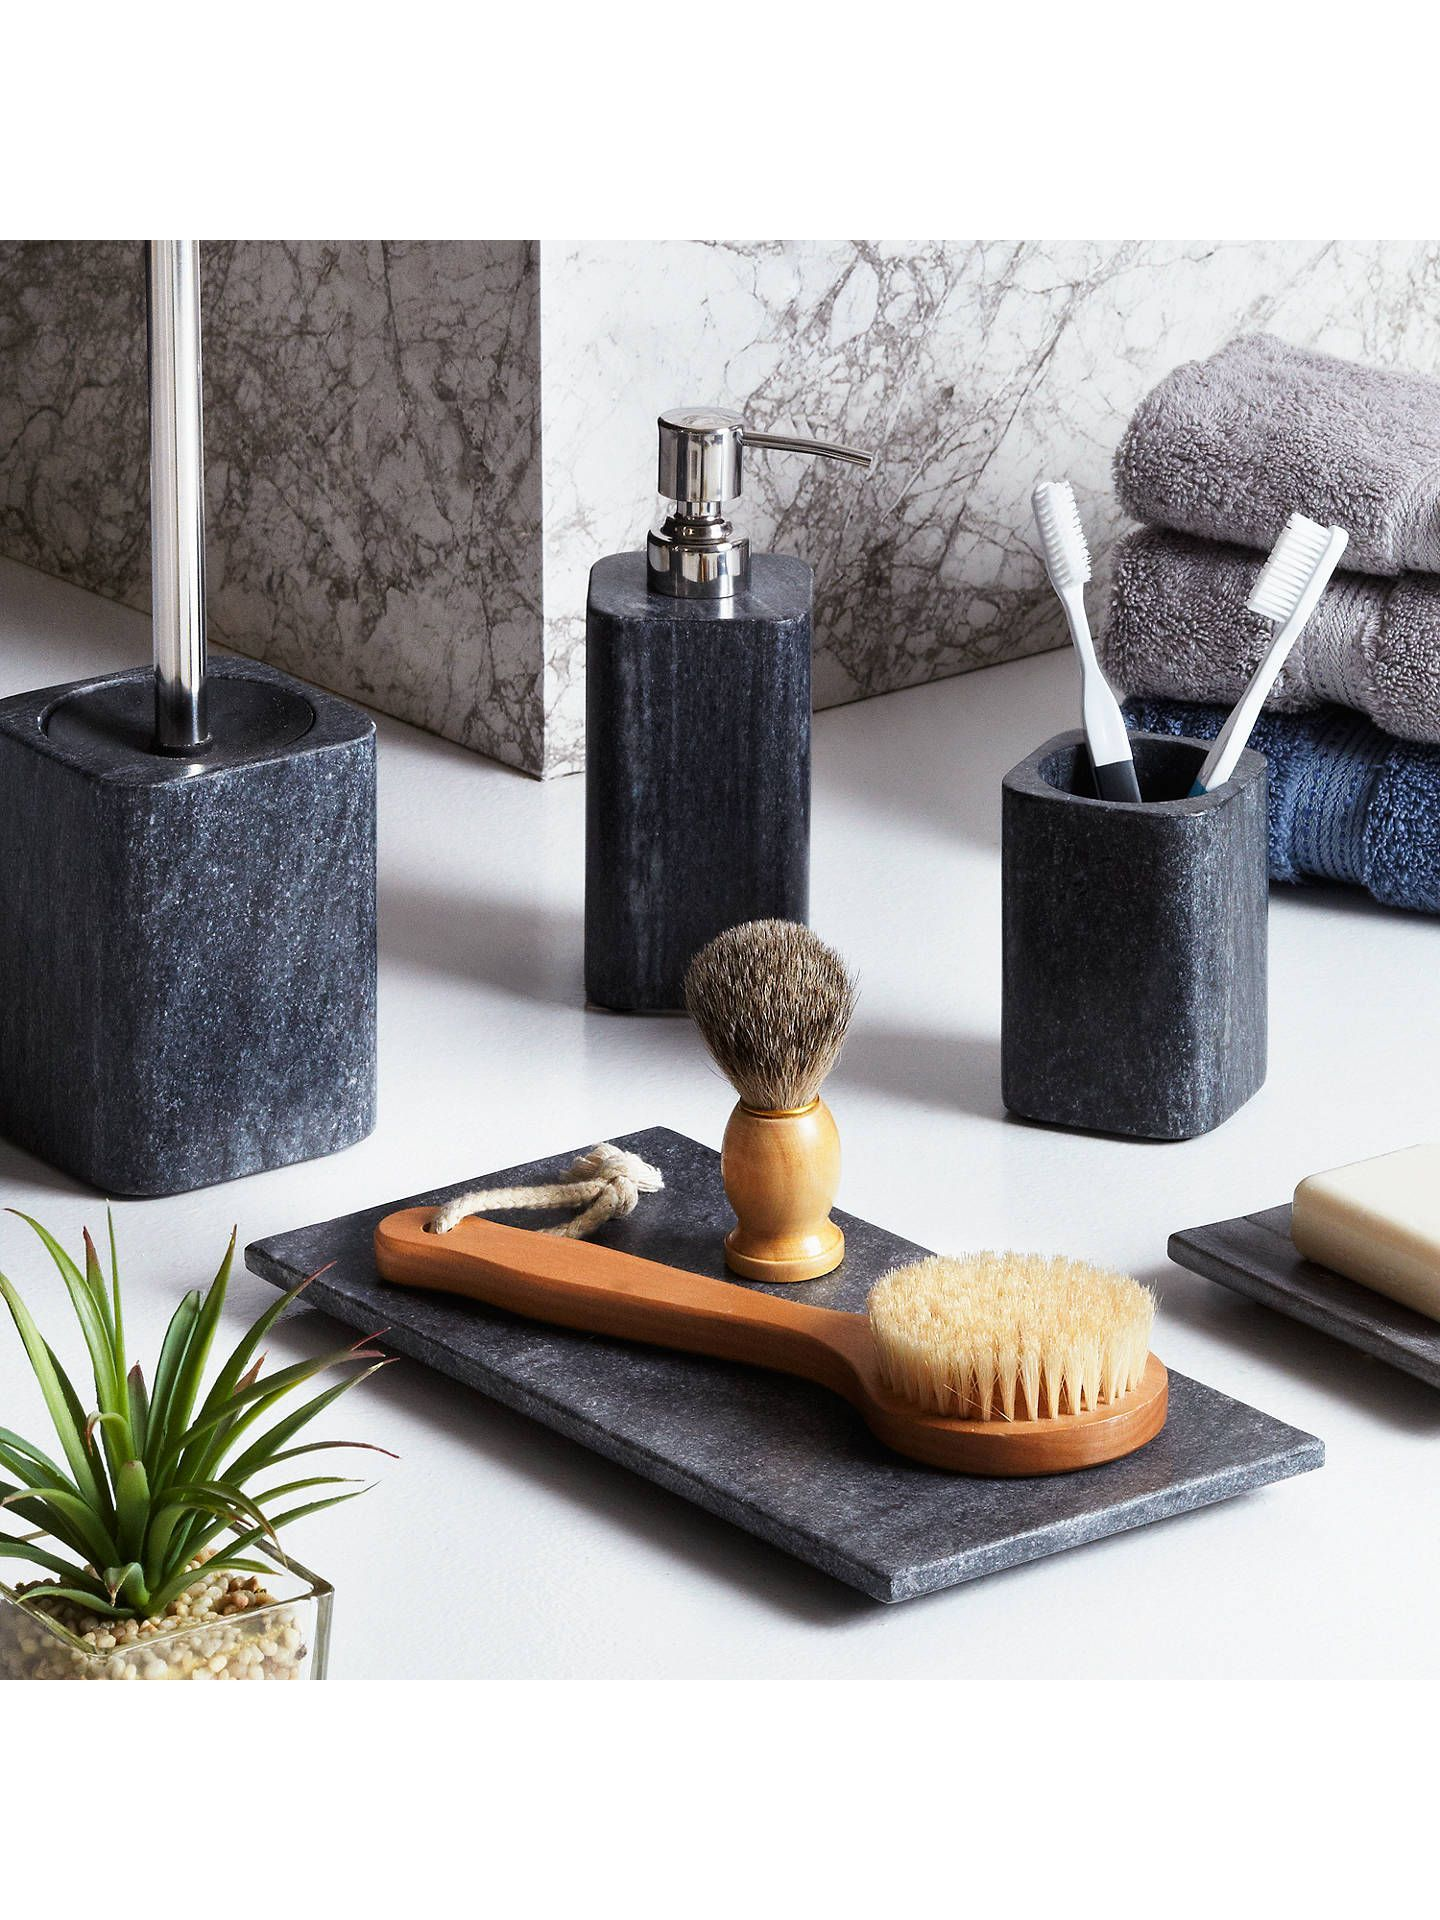 Buyjohn Lewis Partners Marble Ocean Accessories Tray Online At Johnlewis Com Luxurybathroomaccess Marble Bathroom Elegant Bathroom Bathroom Accessories Sets